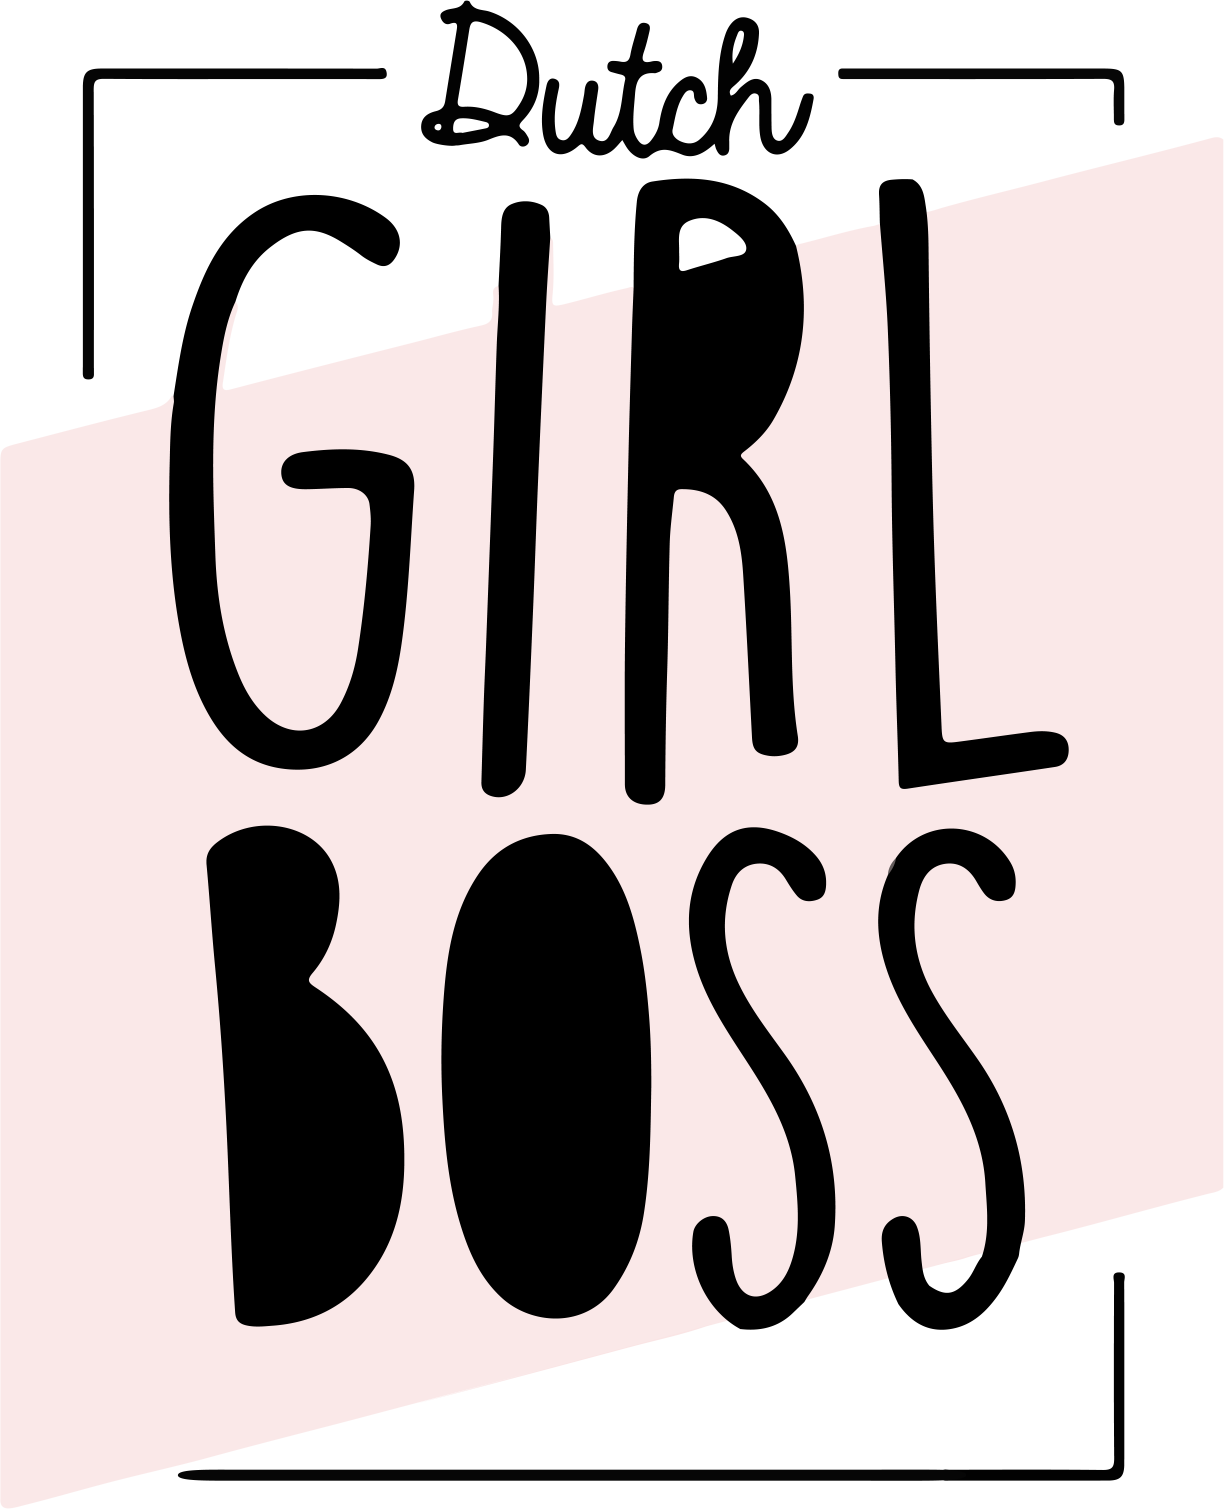 Dutch Girlboss